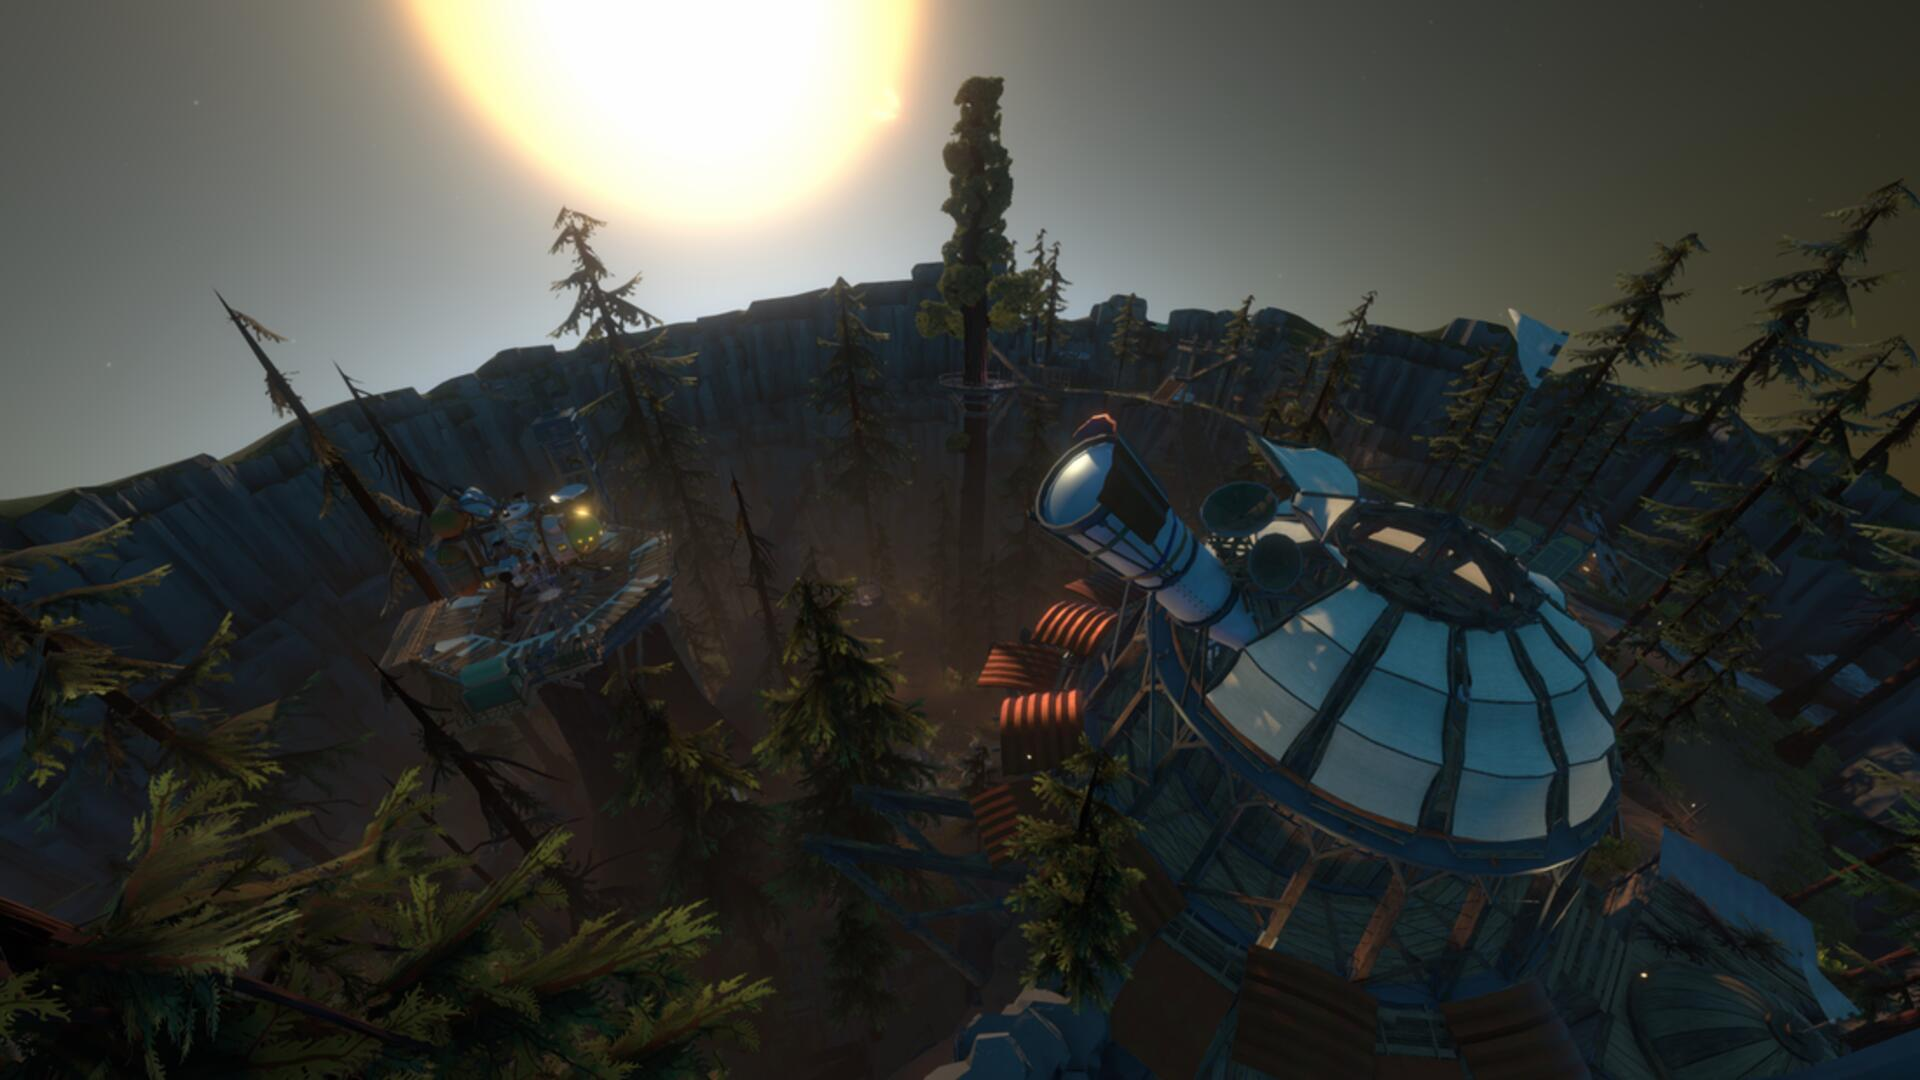 From Student Project to Backpacking in Space: The Story Behind the Mystery Sci-Fi Outer Wilds